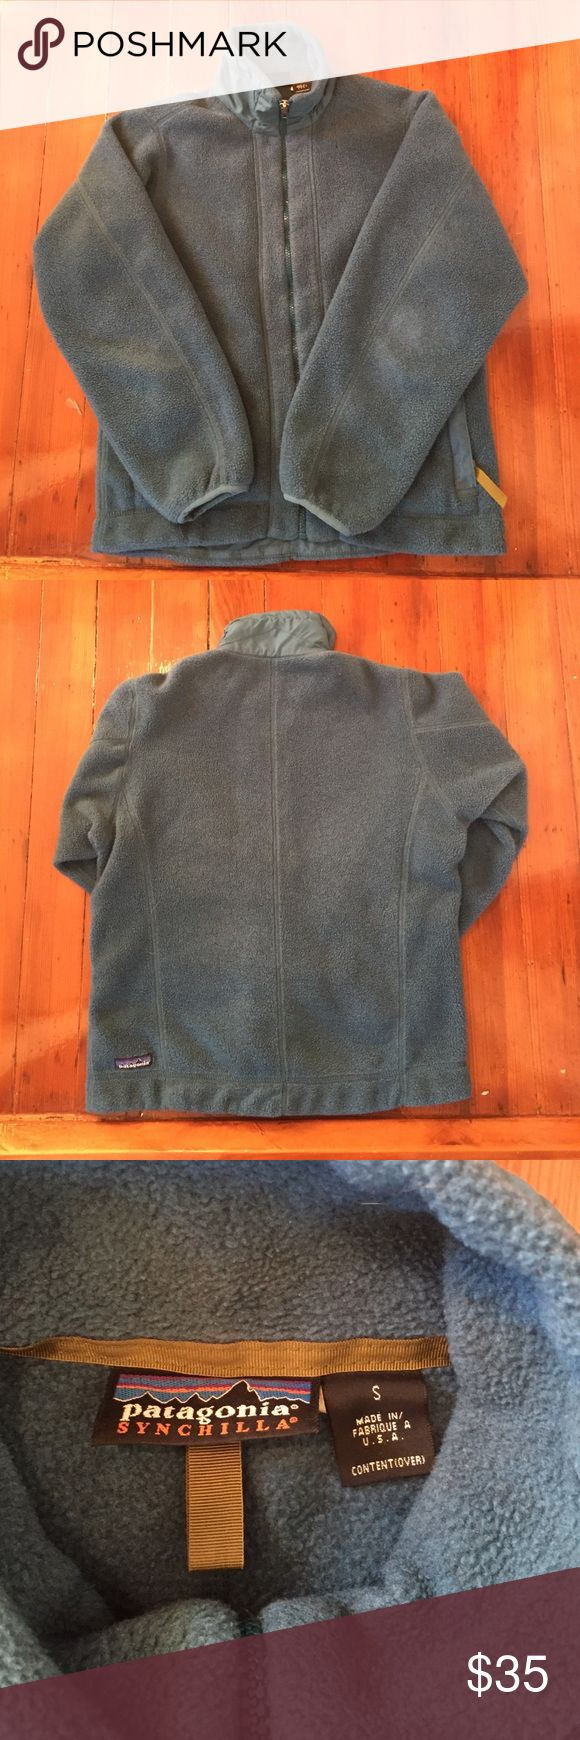 Patagonia synchilla jacket Teal colored Patagonia fleece zip jacket. Has small hole on front so please check pictures. Patagonia Jackets & Coats